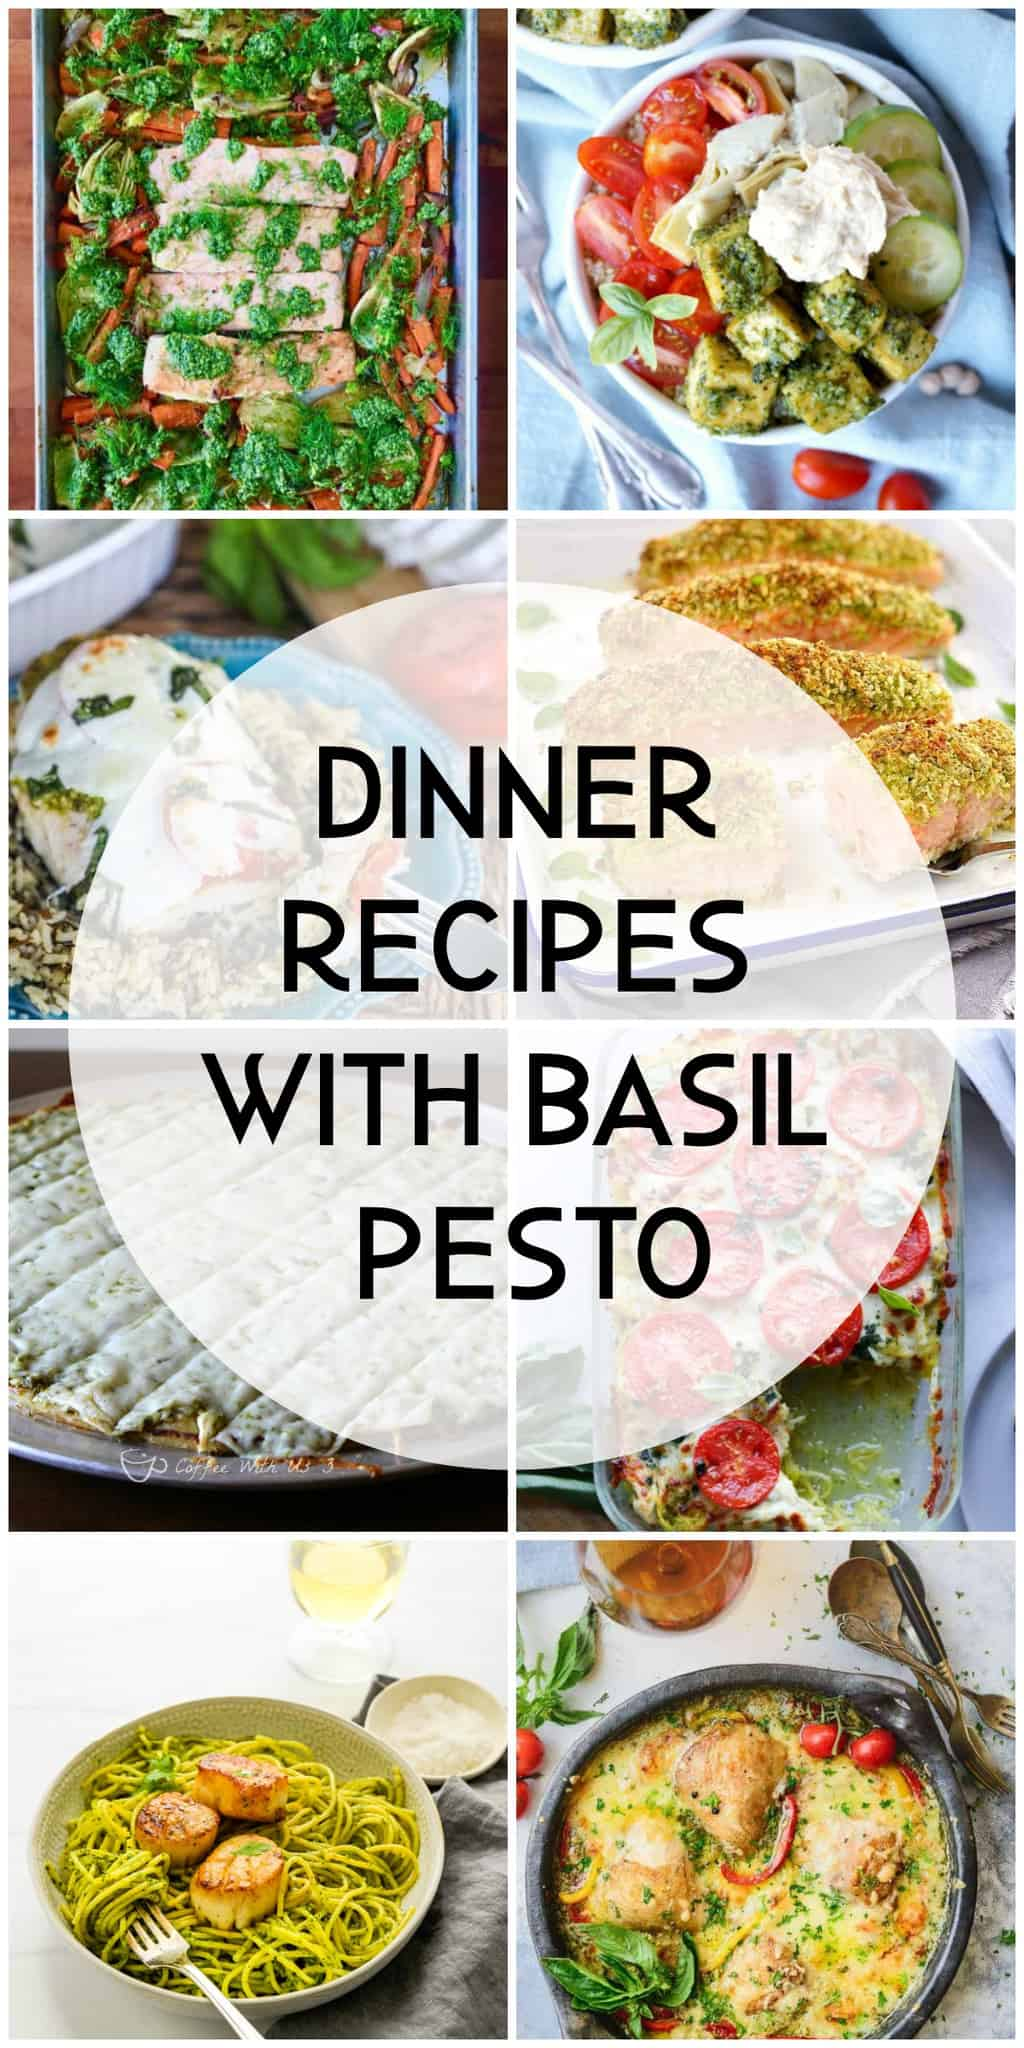 Collage of dinner recipes made with basil pesto